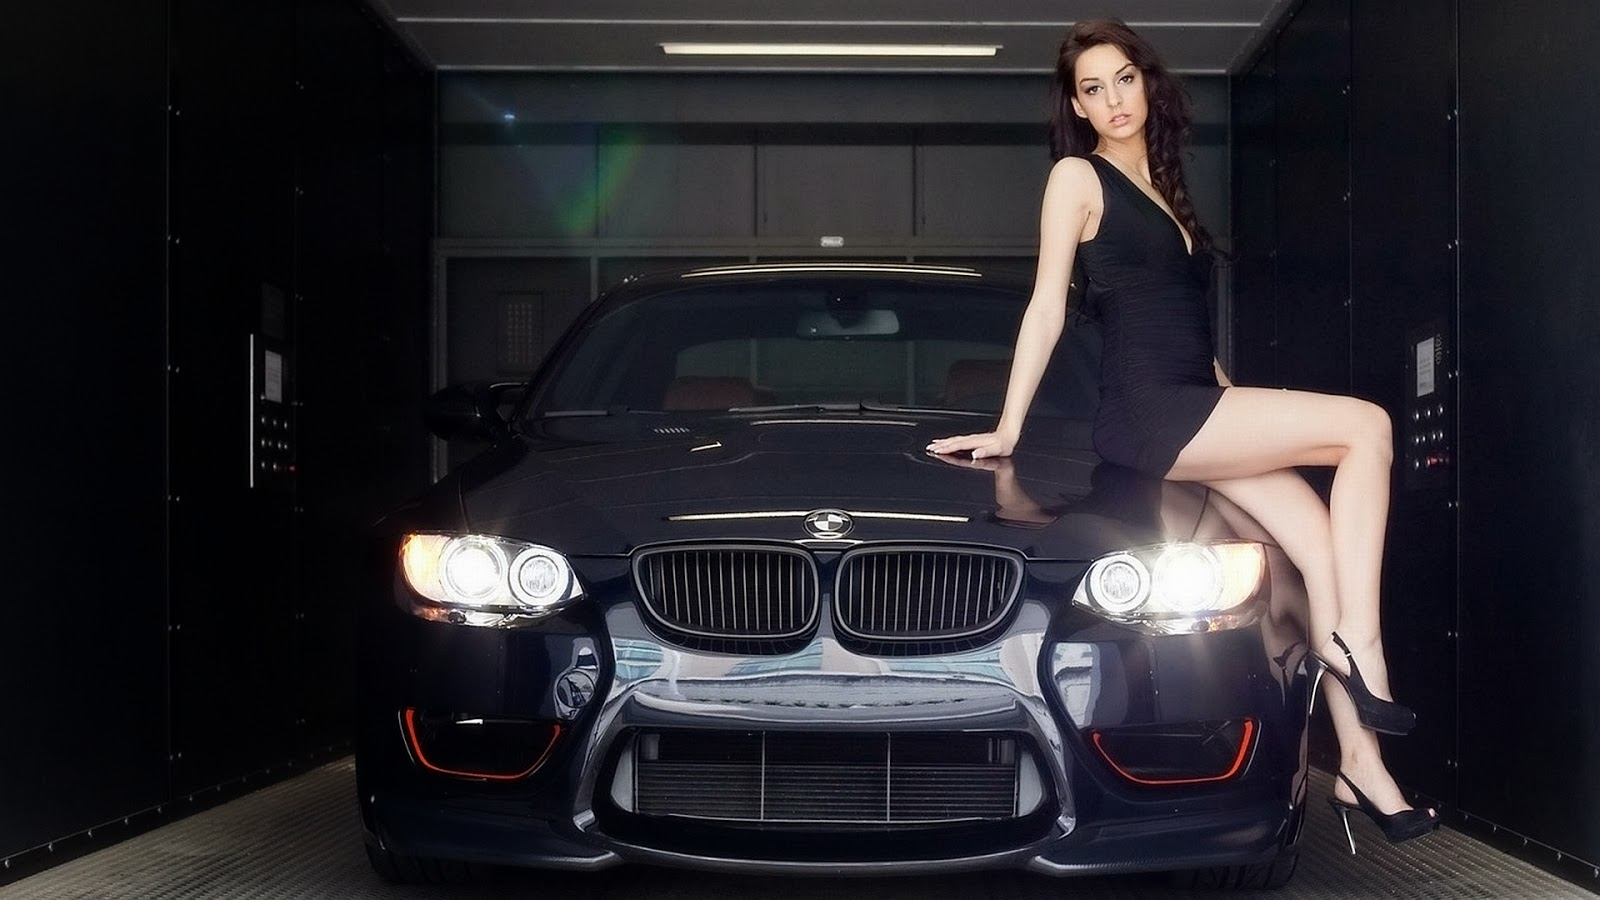 Latest-BMW-car-HD-poto-with-girl-model-download.jpg